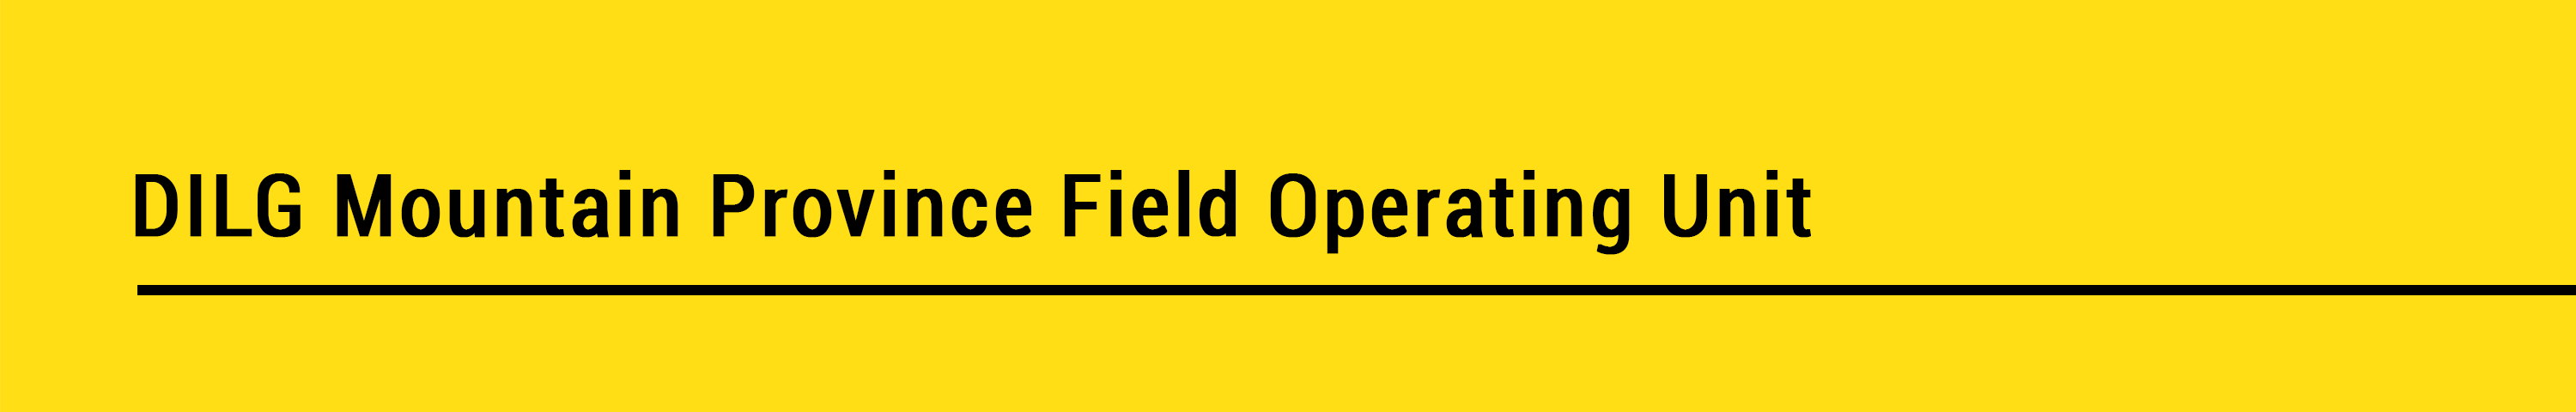 Mountain Province Field Operating Unit banner